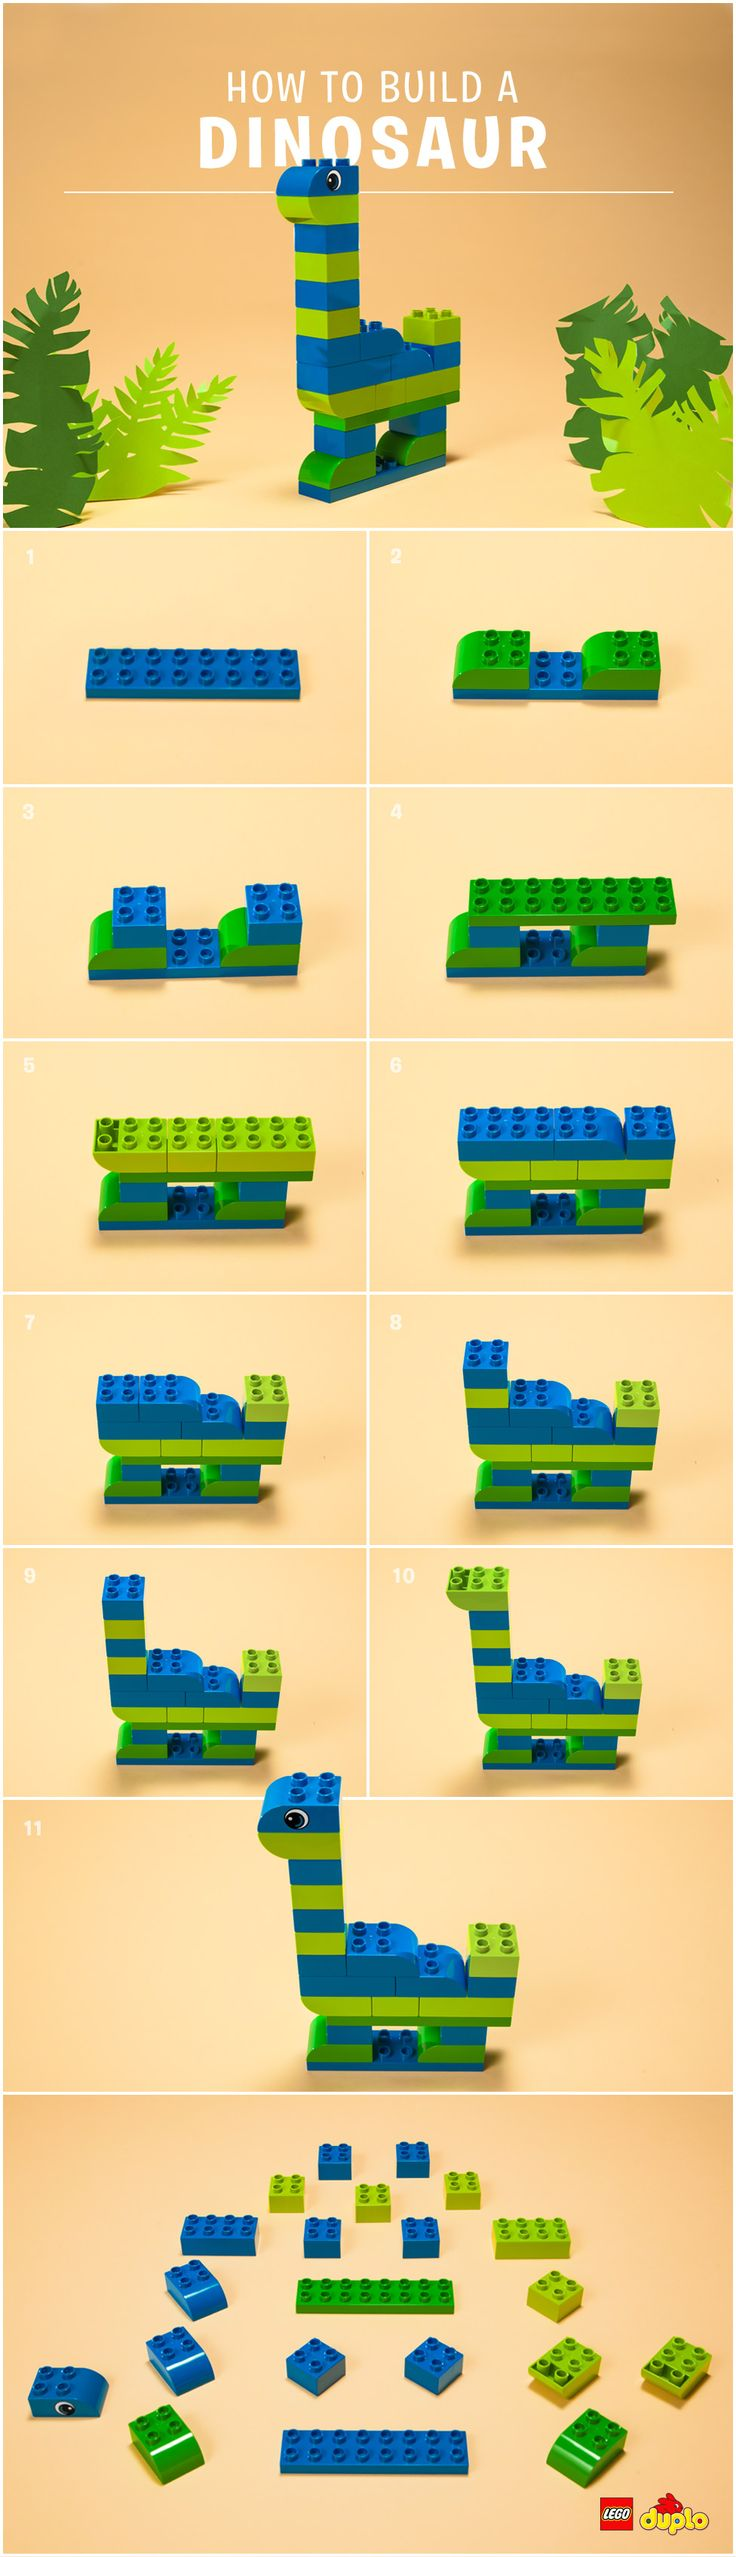 ROAAAR! Is your little one obsessed with dinosaurs? Here are some instructions on how to build your very own long necked dino friend. Check out our instructions here: http://www.lego.com/en-us/family/ (Diy Step)